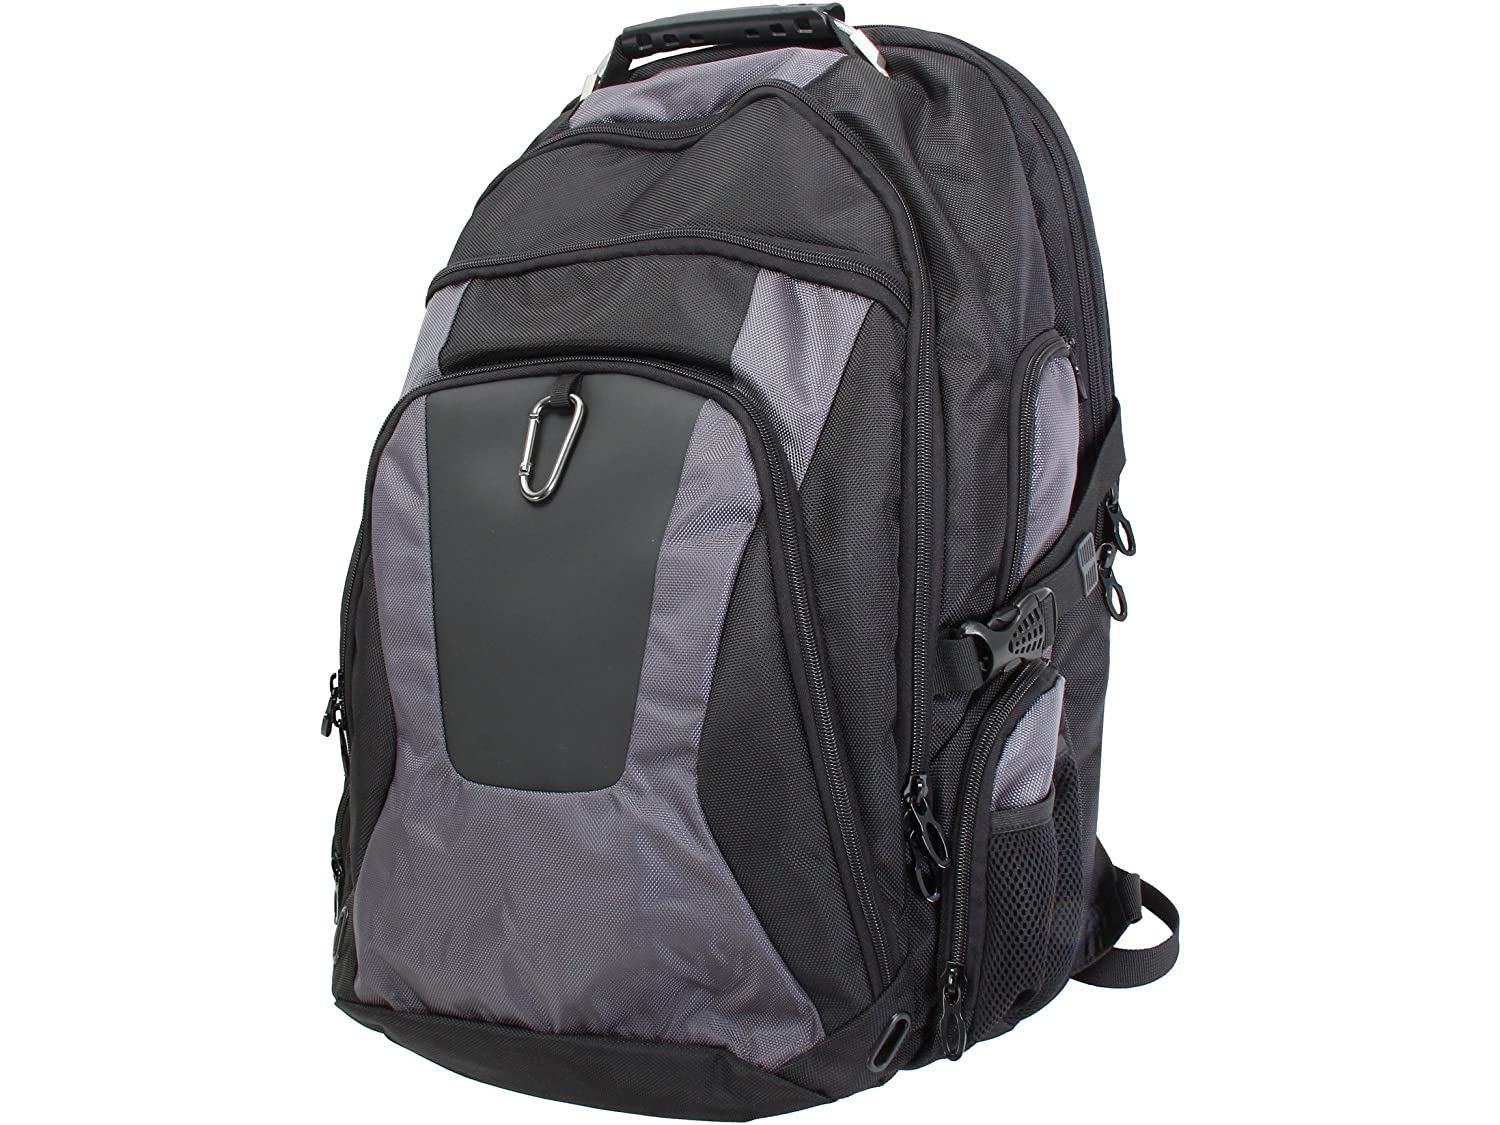 762321515b Best Travel Laptop Backpack 2014